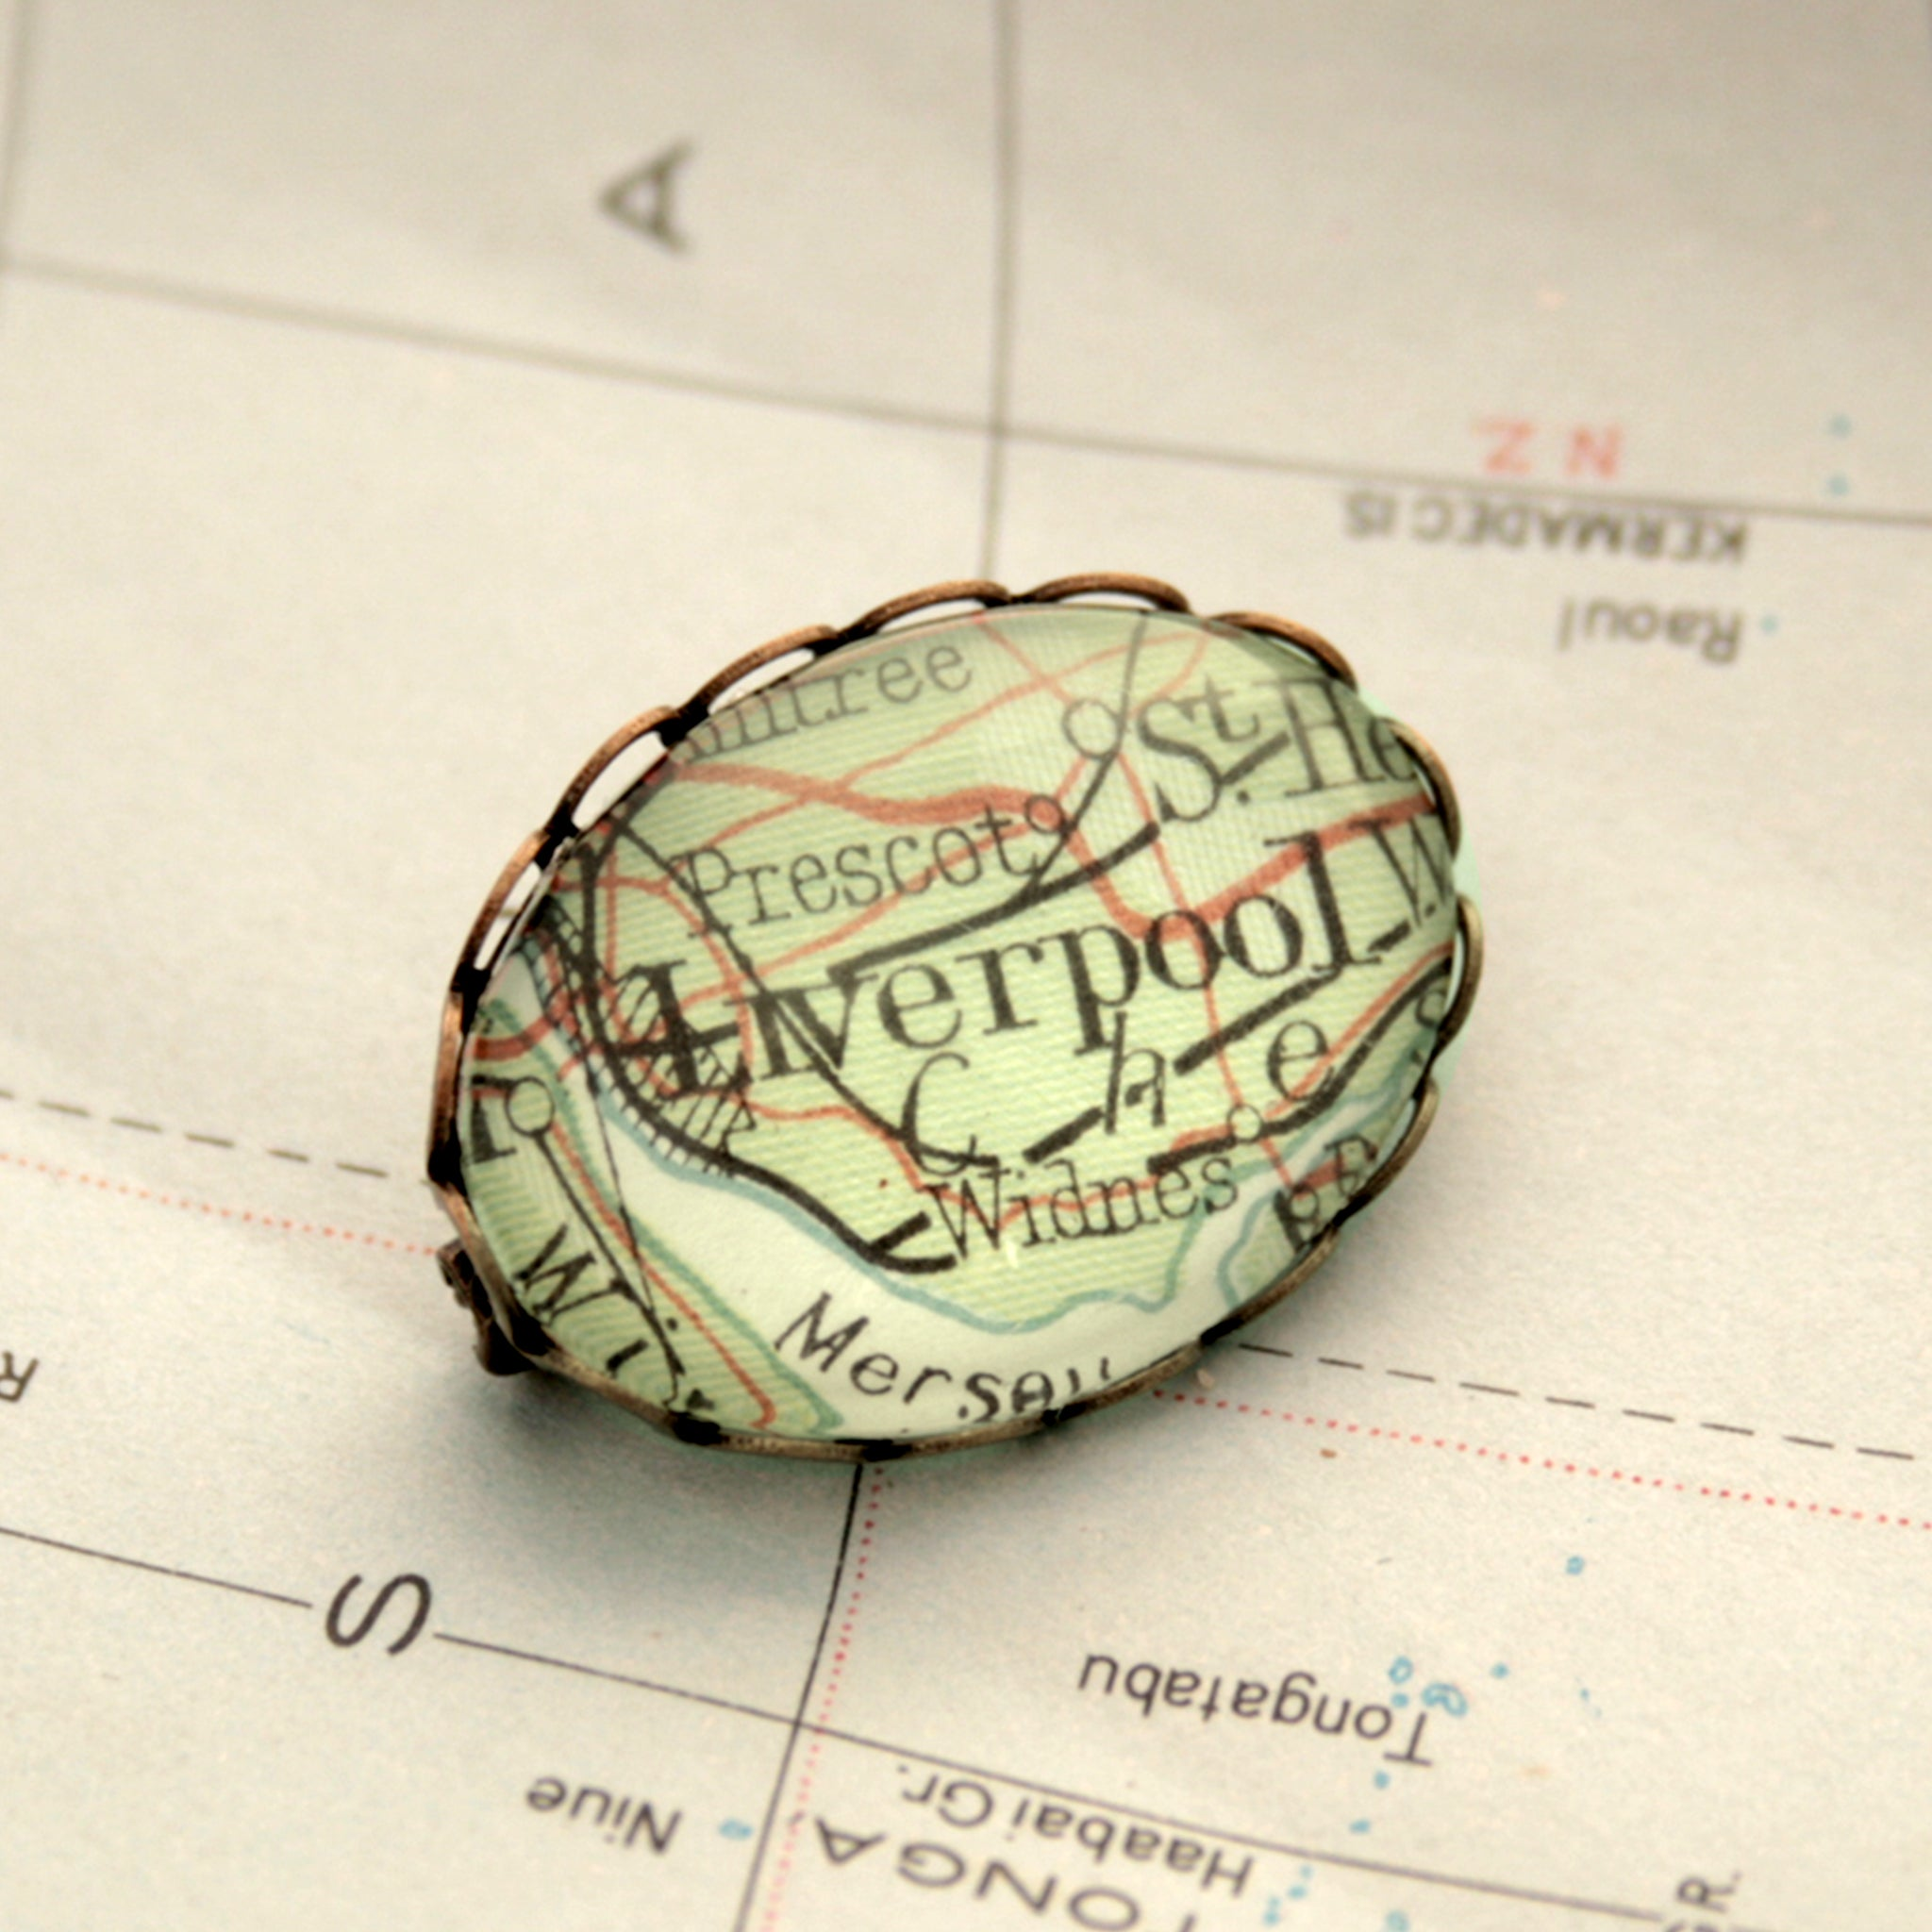 Antique Bronze brooch featuring map of Liverpool